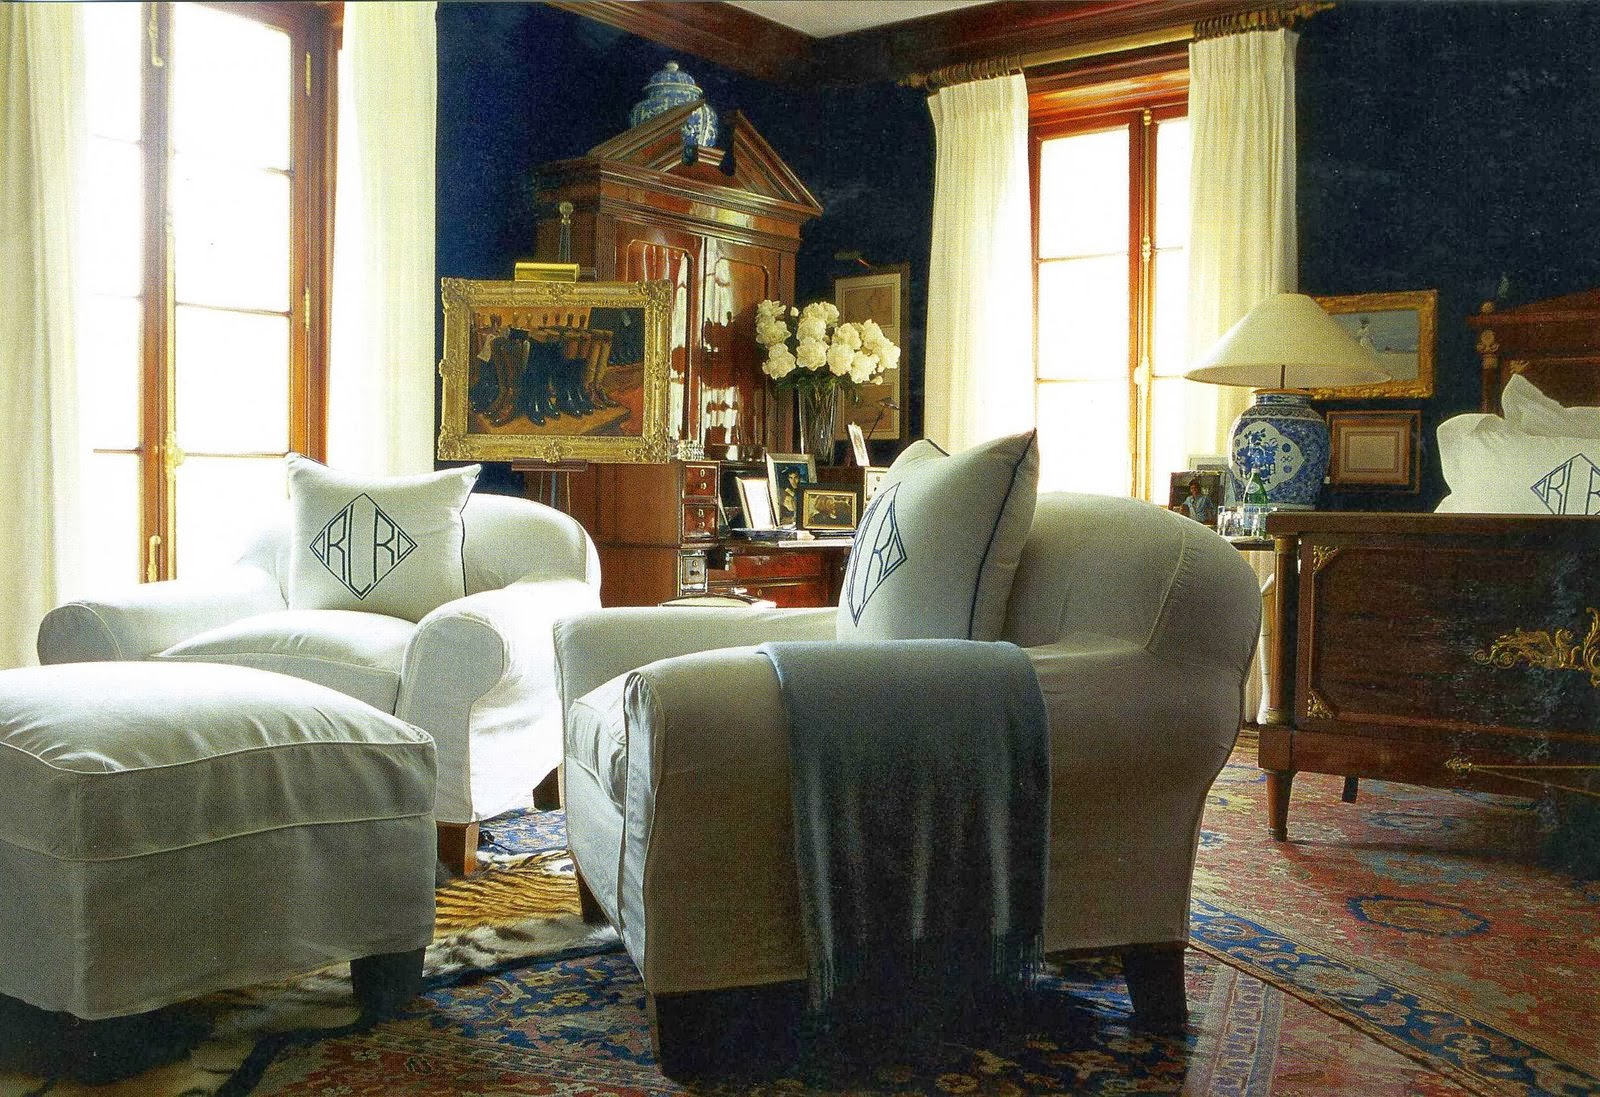 Home Decor New York Of Decor Inspiration At Home With Ralph Lauren New York